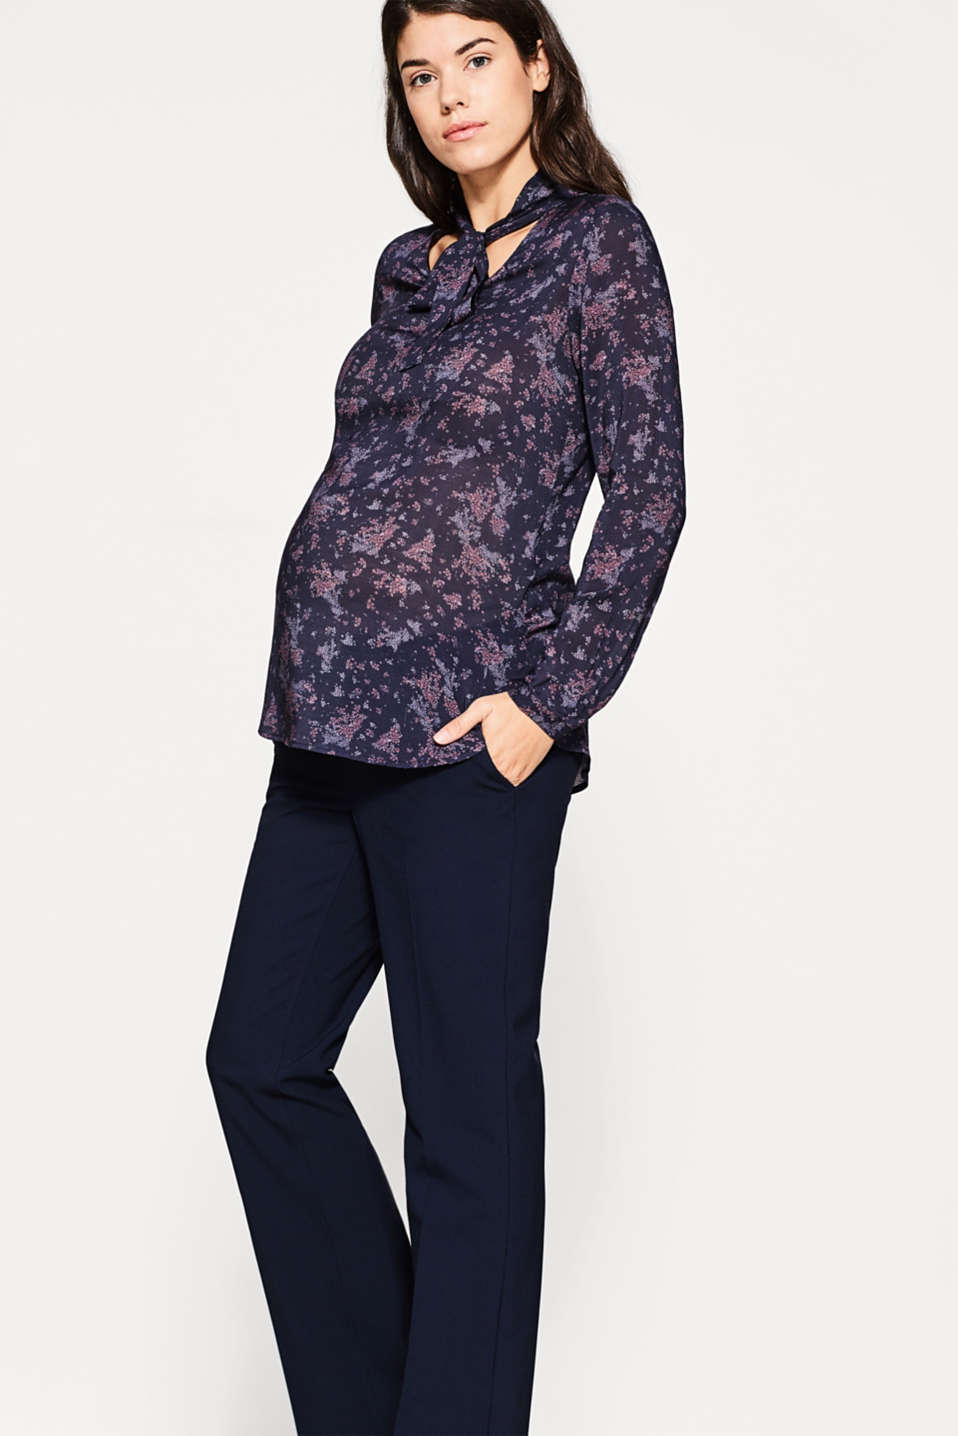 Esprit - Fancy stretch trousers, under-bump waist